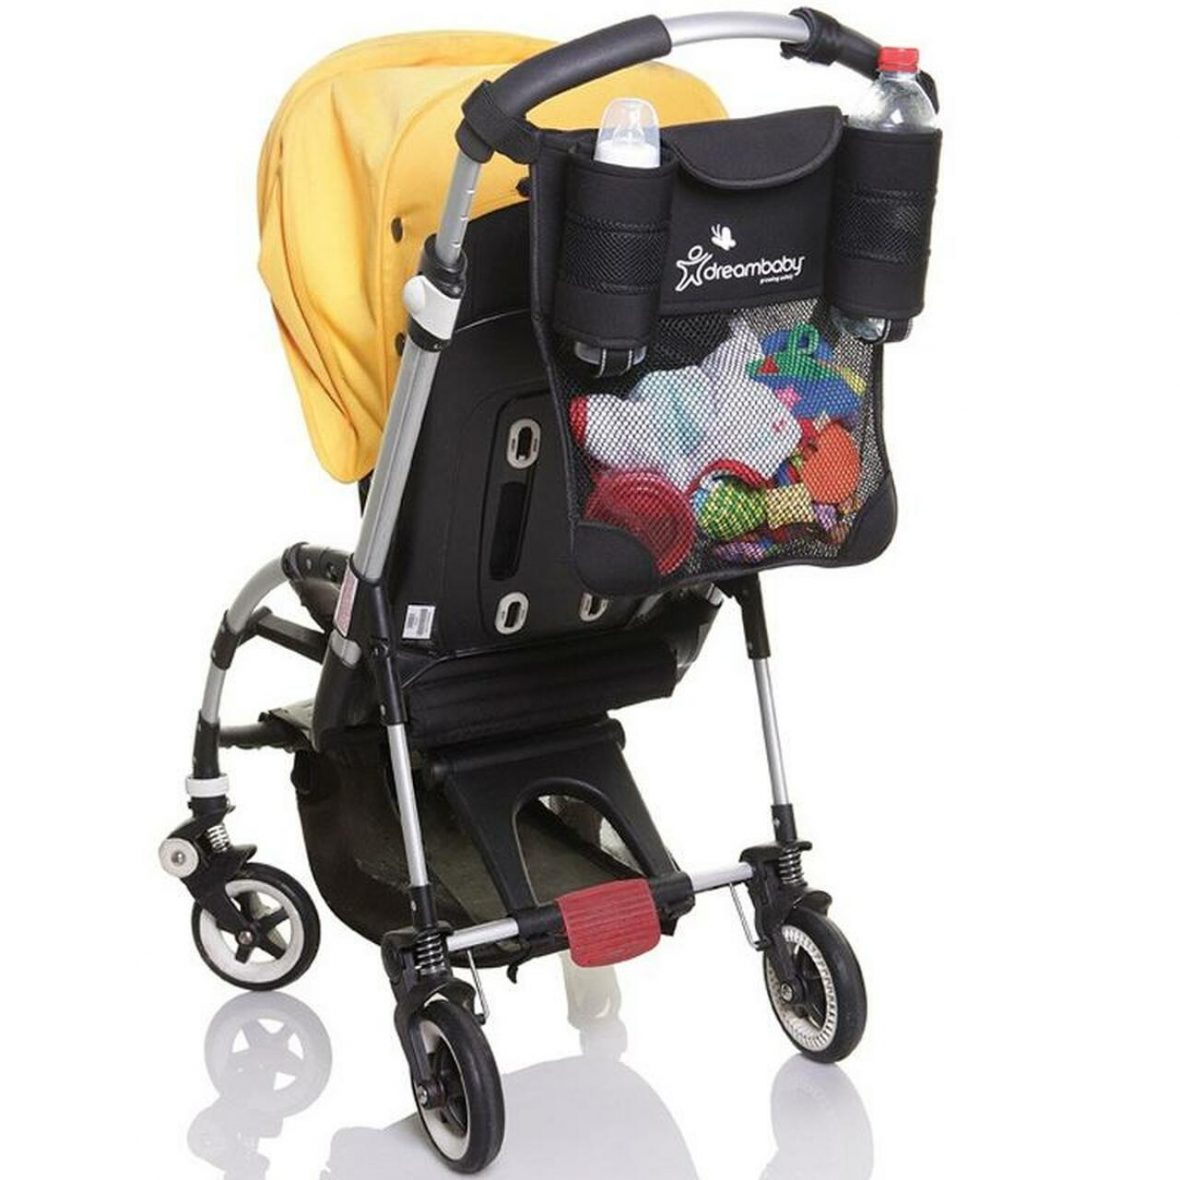 Dreambaby_Stroller_Buddy_Organiser_with_2_Cup_Holders_live__30853__11910.1602769085